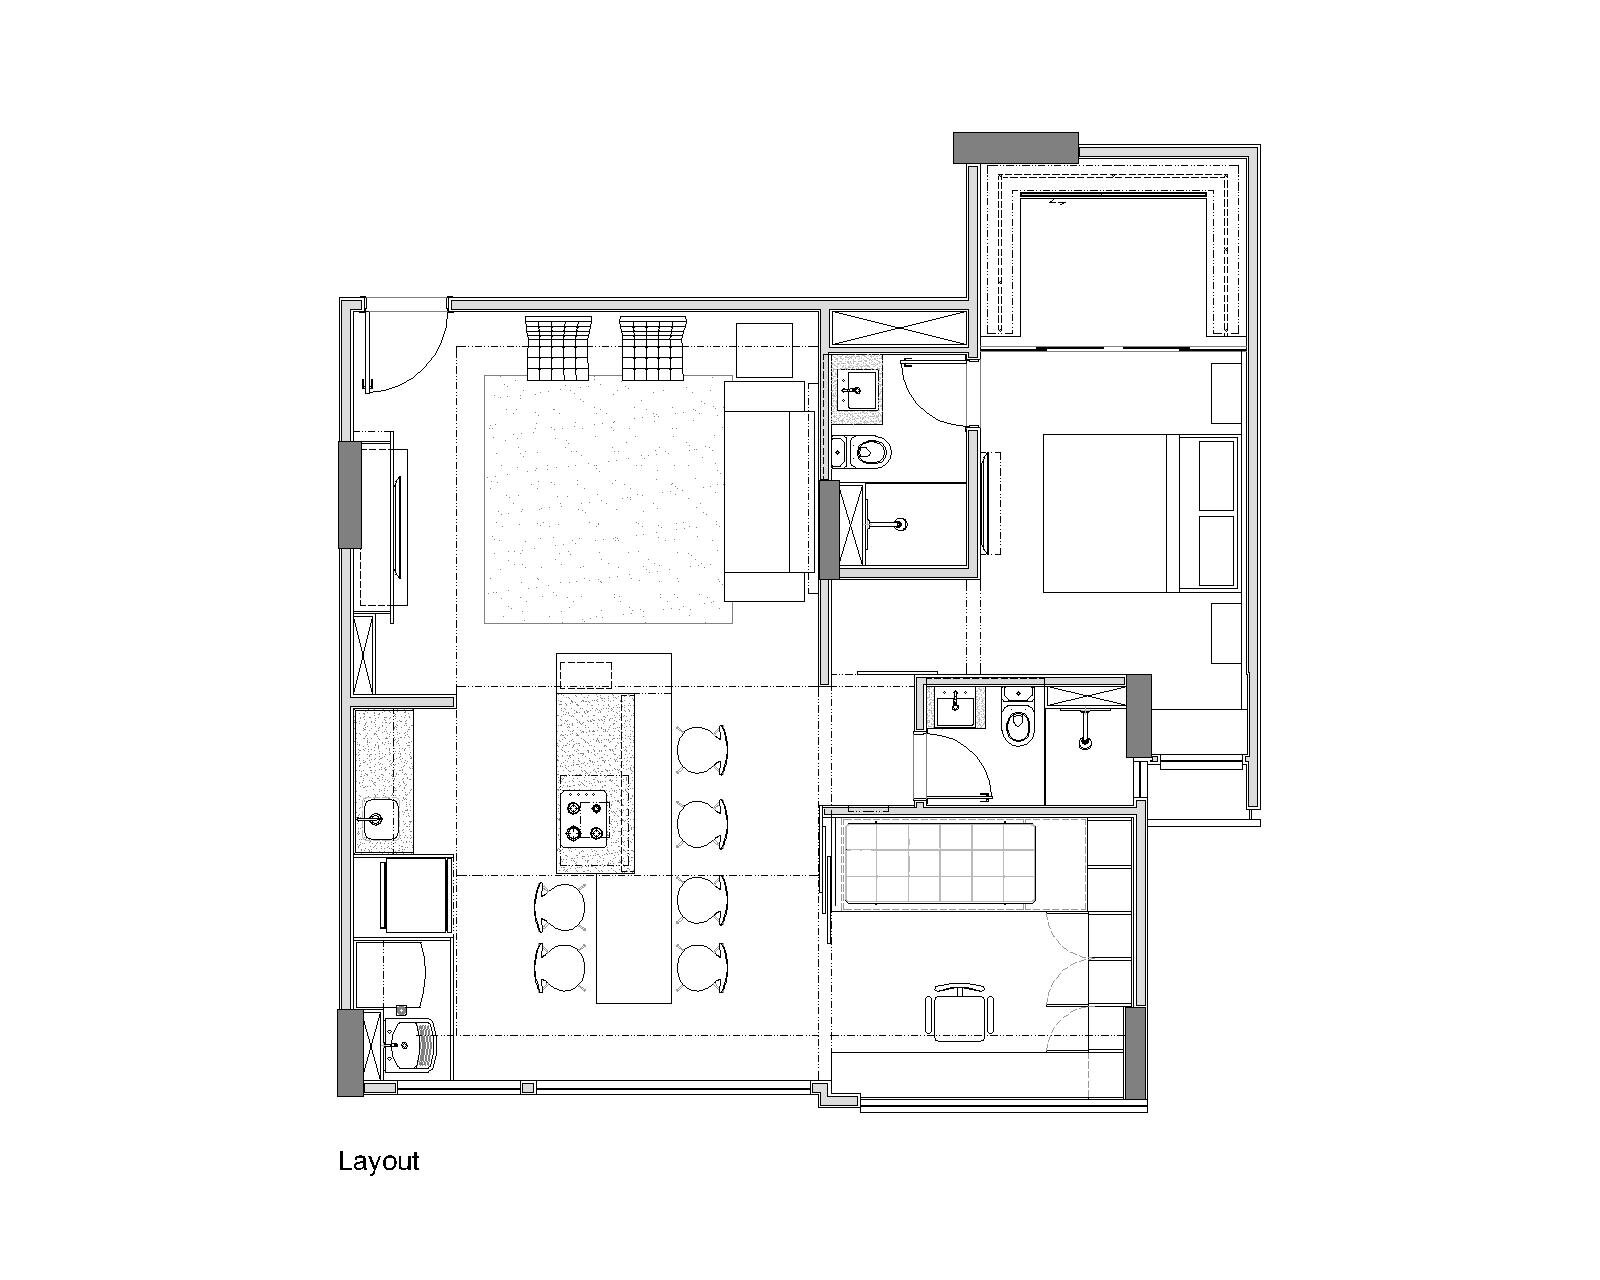 Trama Apartment - Small Apartment - Semerene Arquitetura Interior - Brazil - Floor Plan - Humble Homes